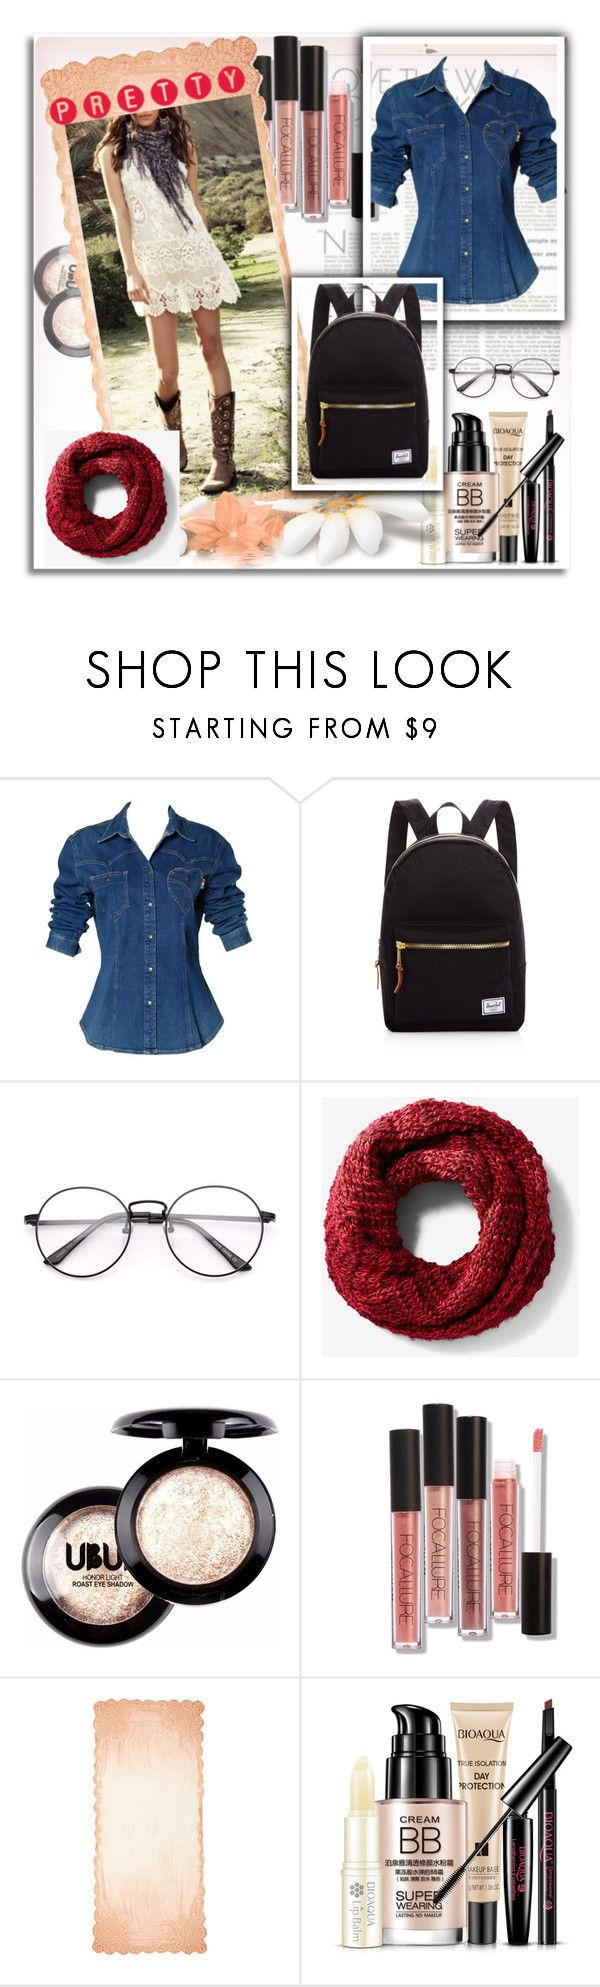 """..."" by alicejudo on Polyvore featuring mode, Moschino, Herschel Supply Co., Express et Faliero Sarti"